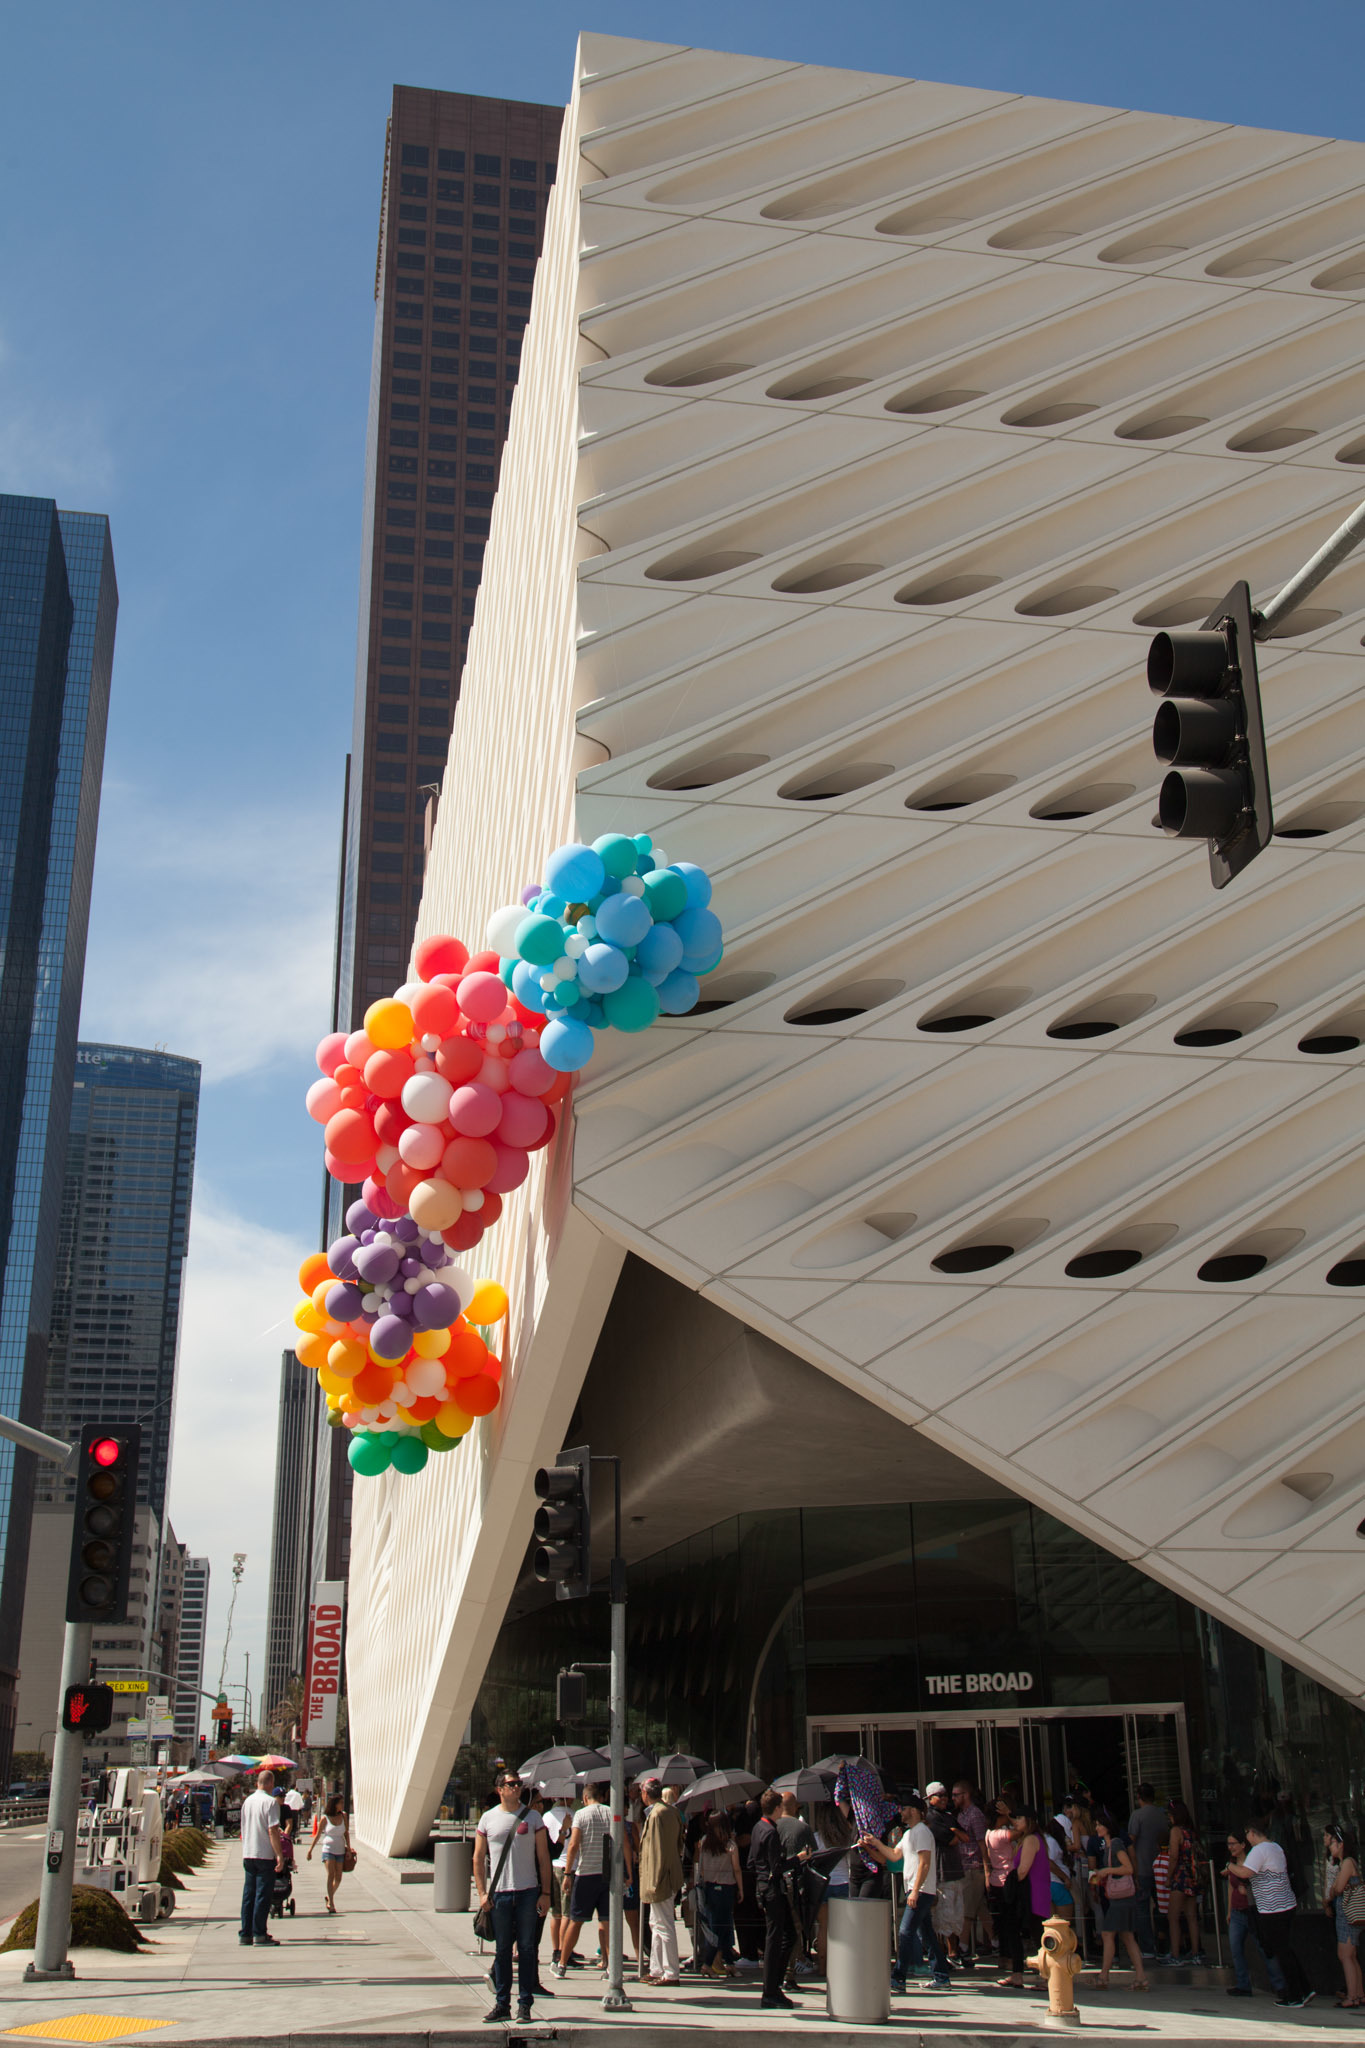 The Broad Celebrates Its First Birthday With Balloons Cupcakes And